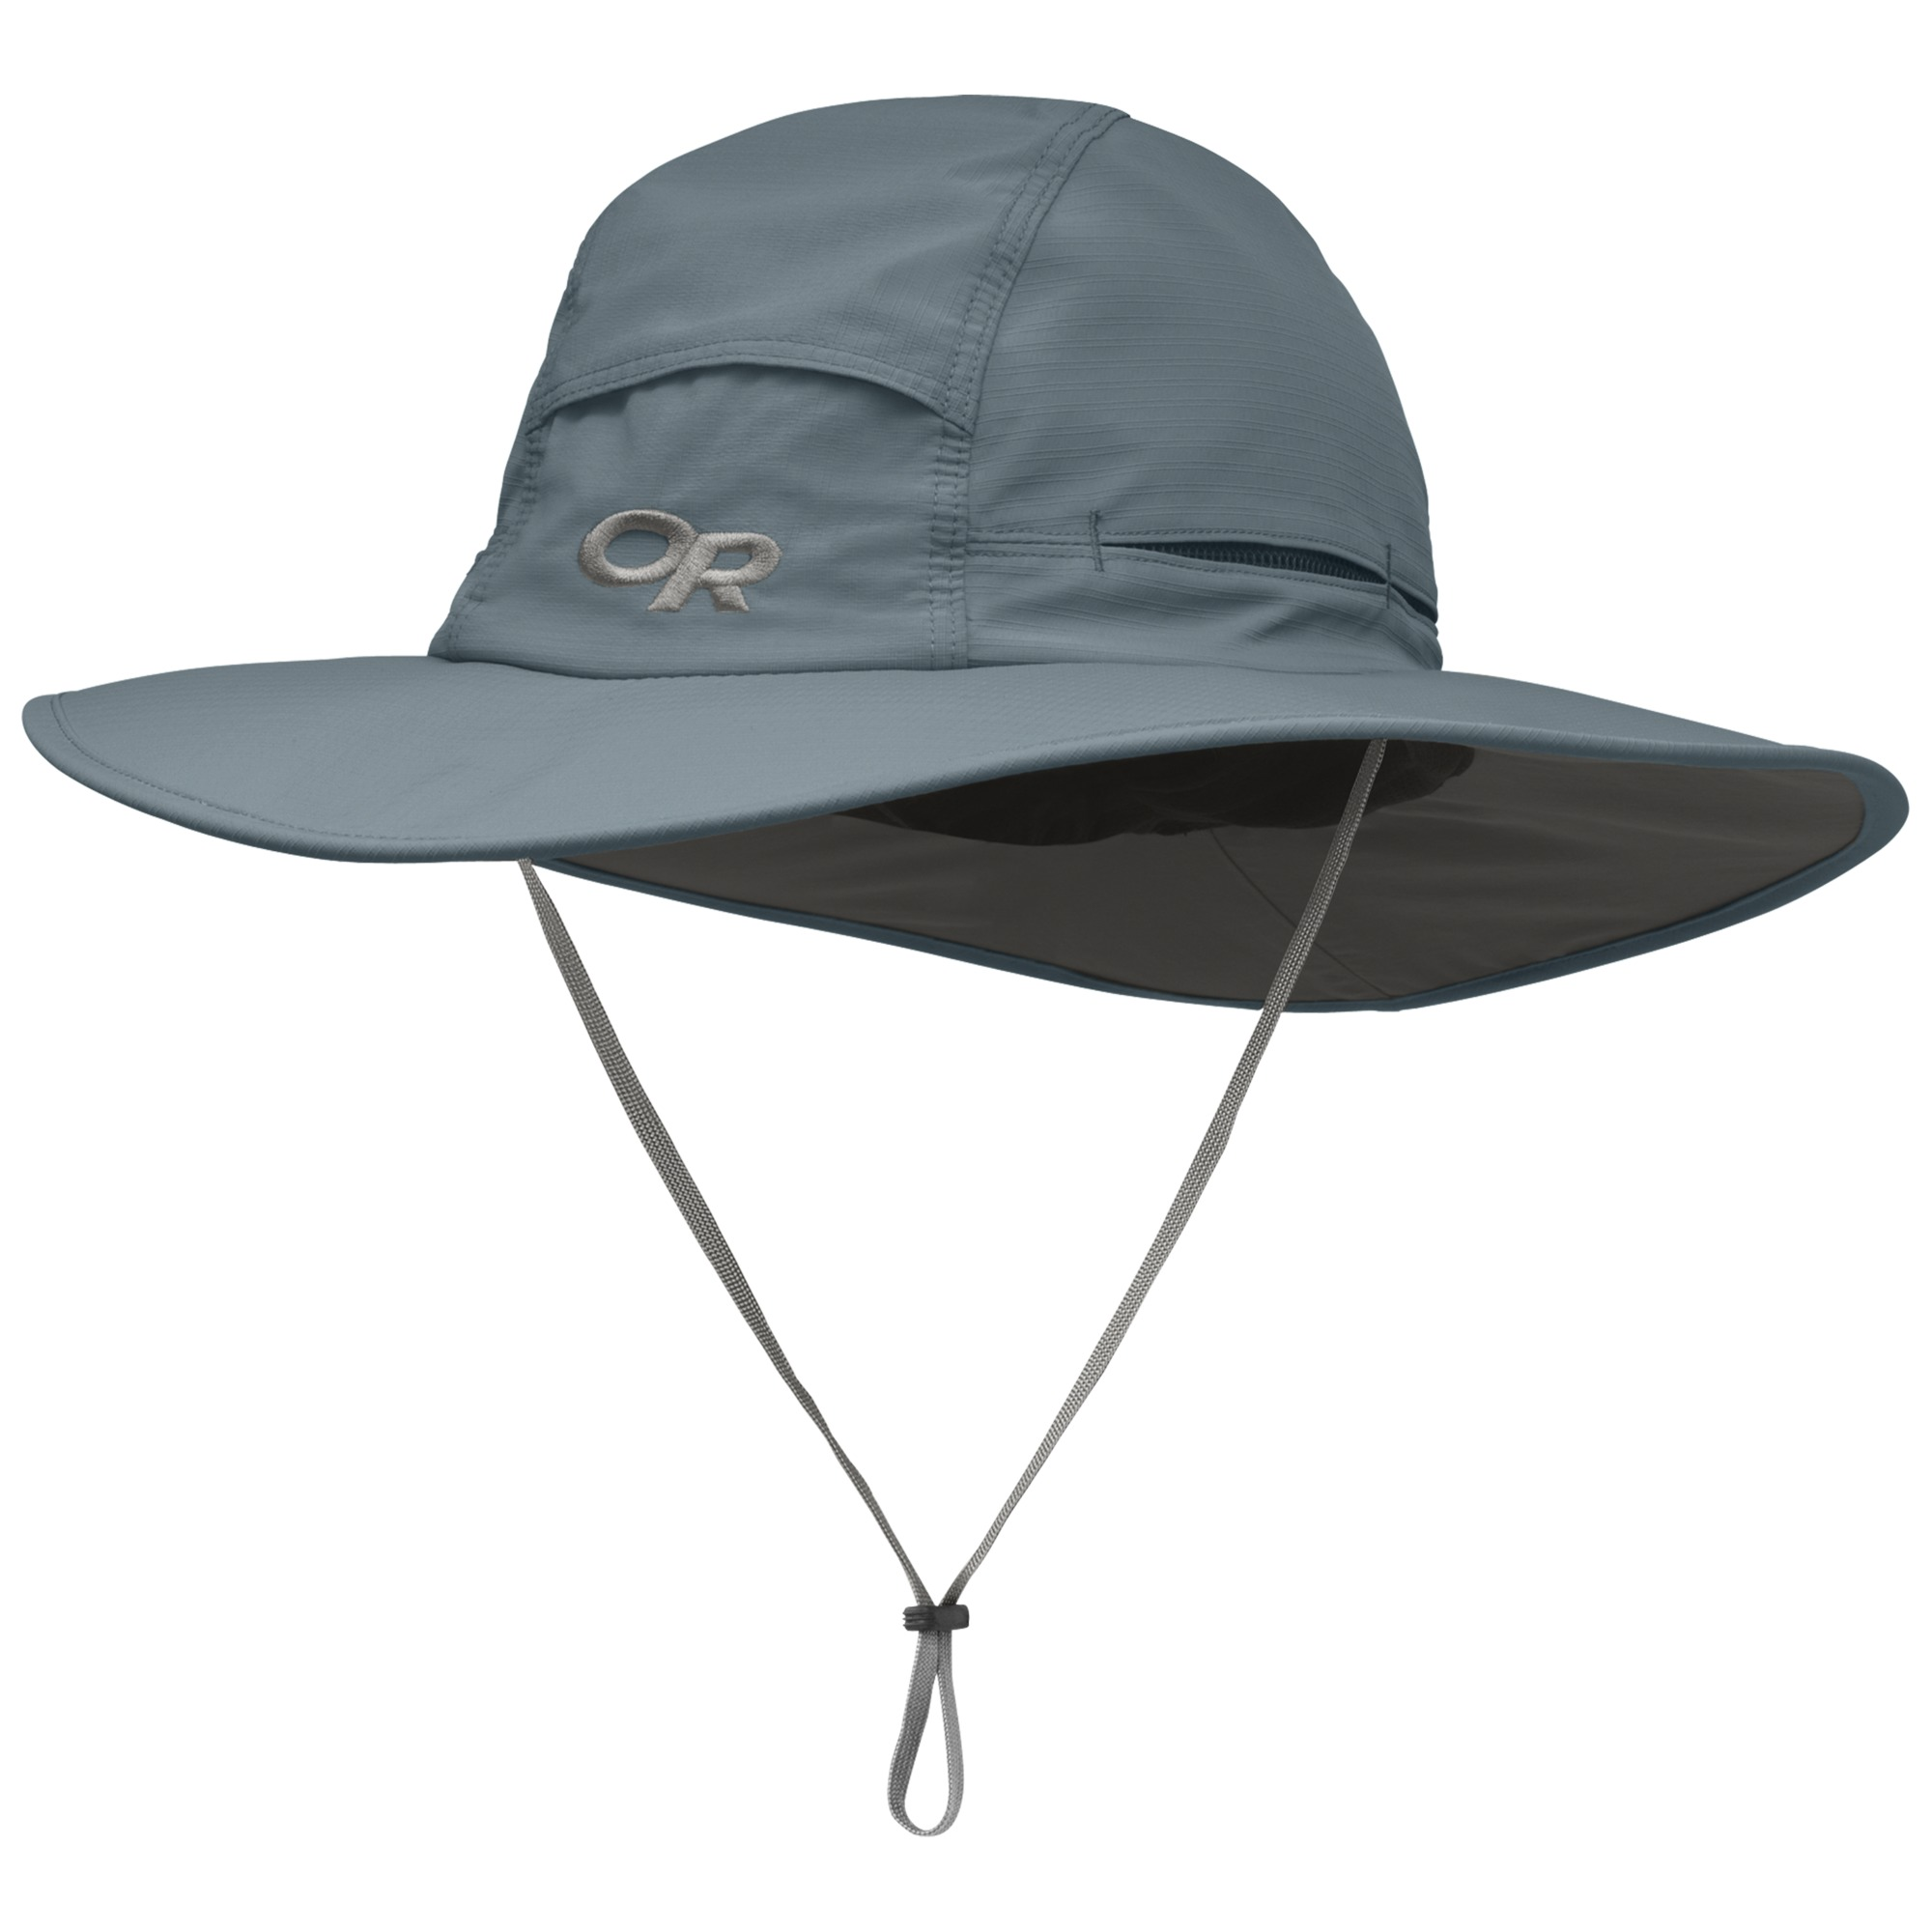 83d8d8ed12eda7 Sombriolet Sun Hat - shade | Outdoor Research